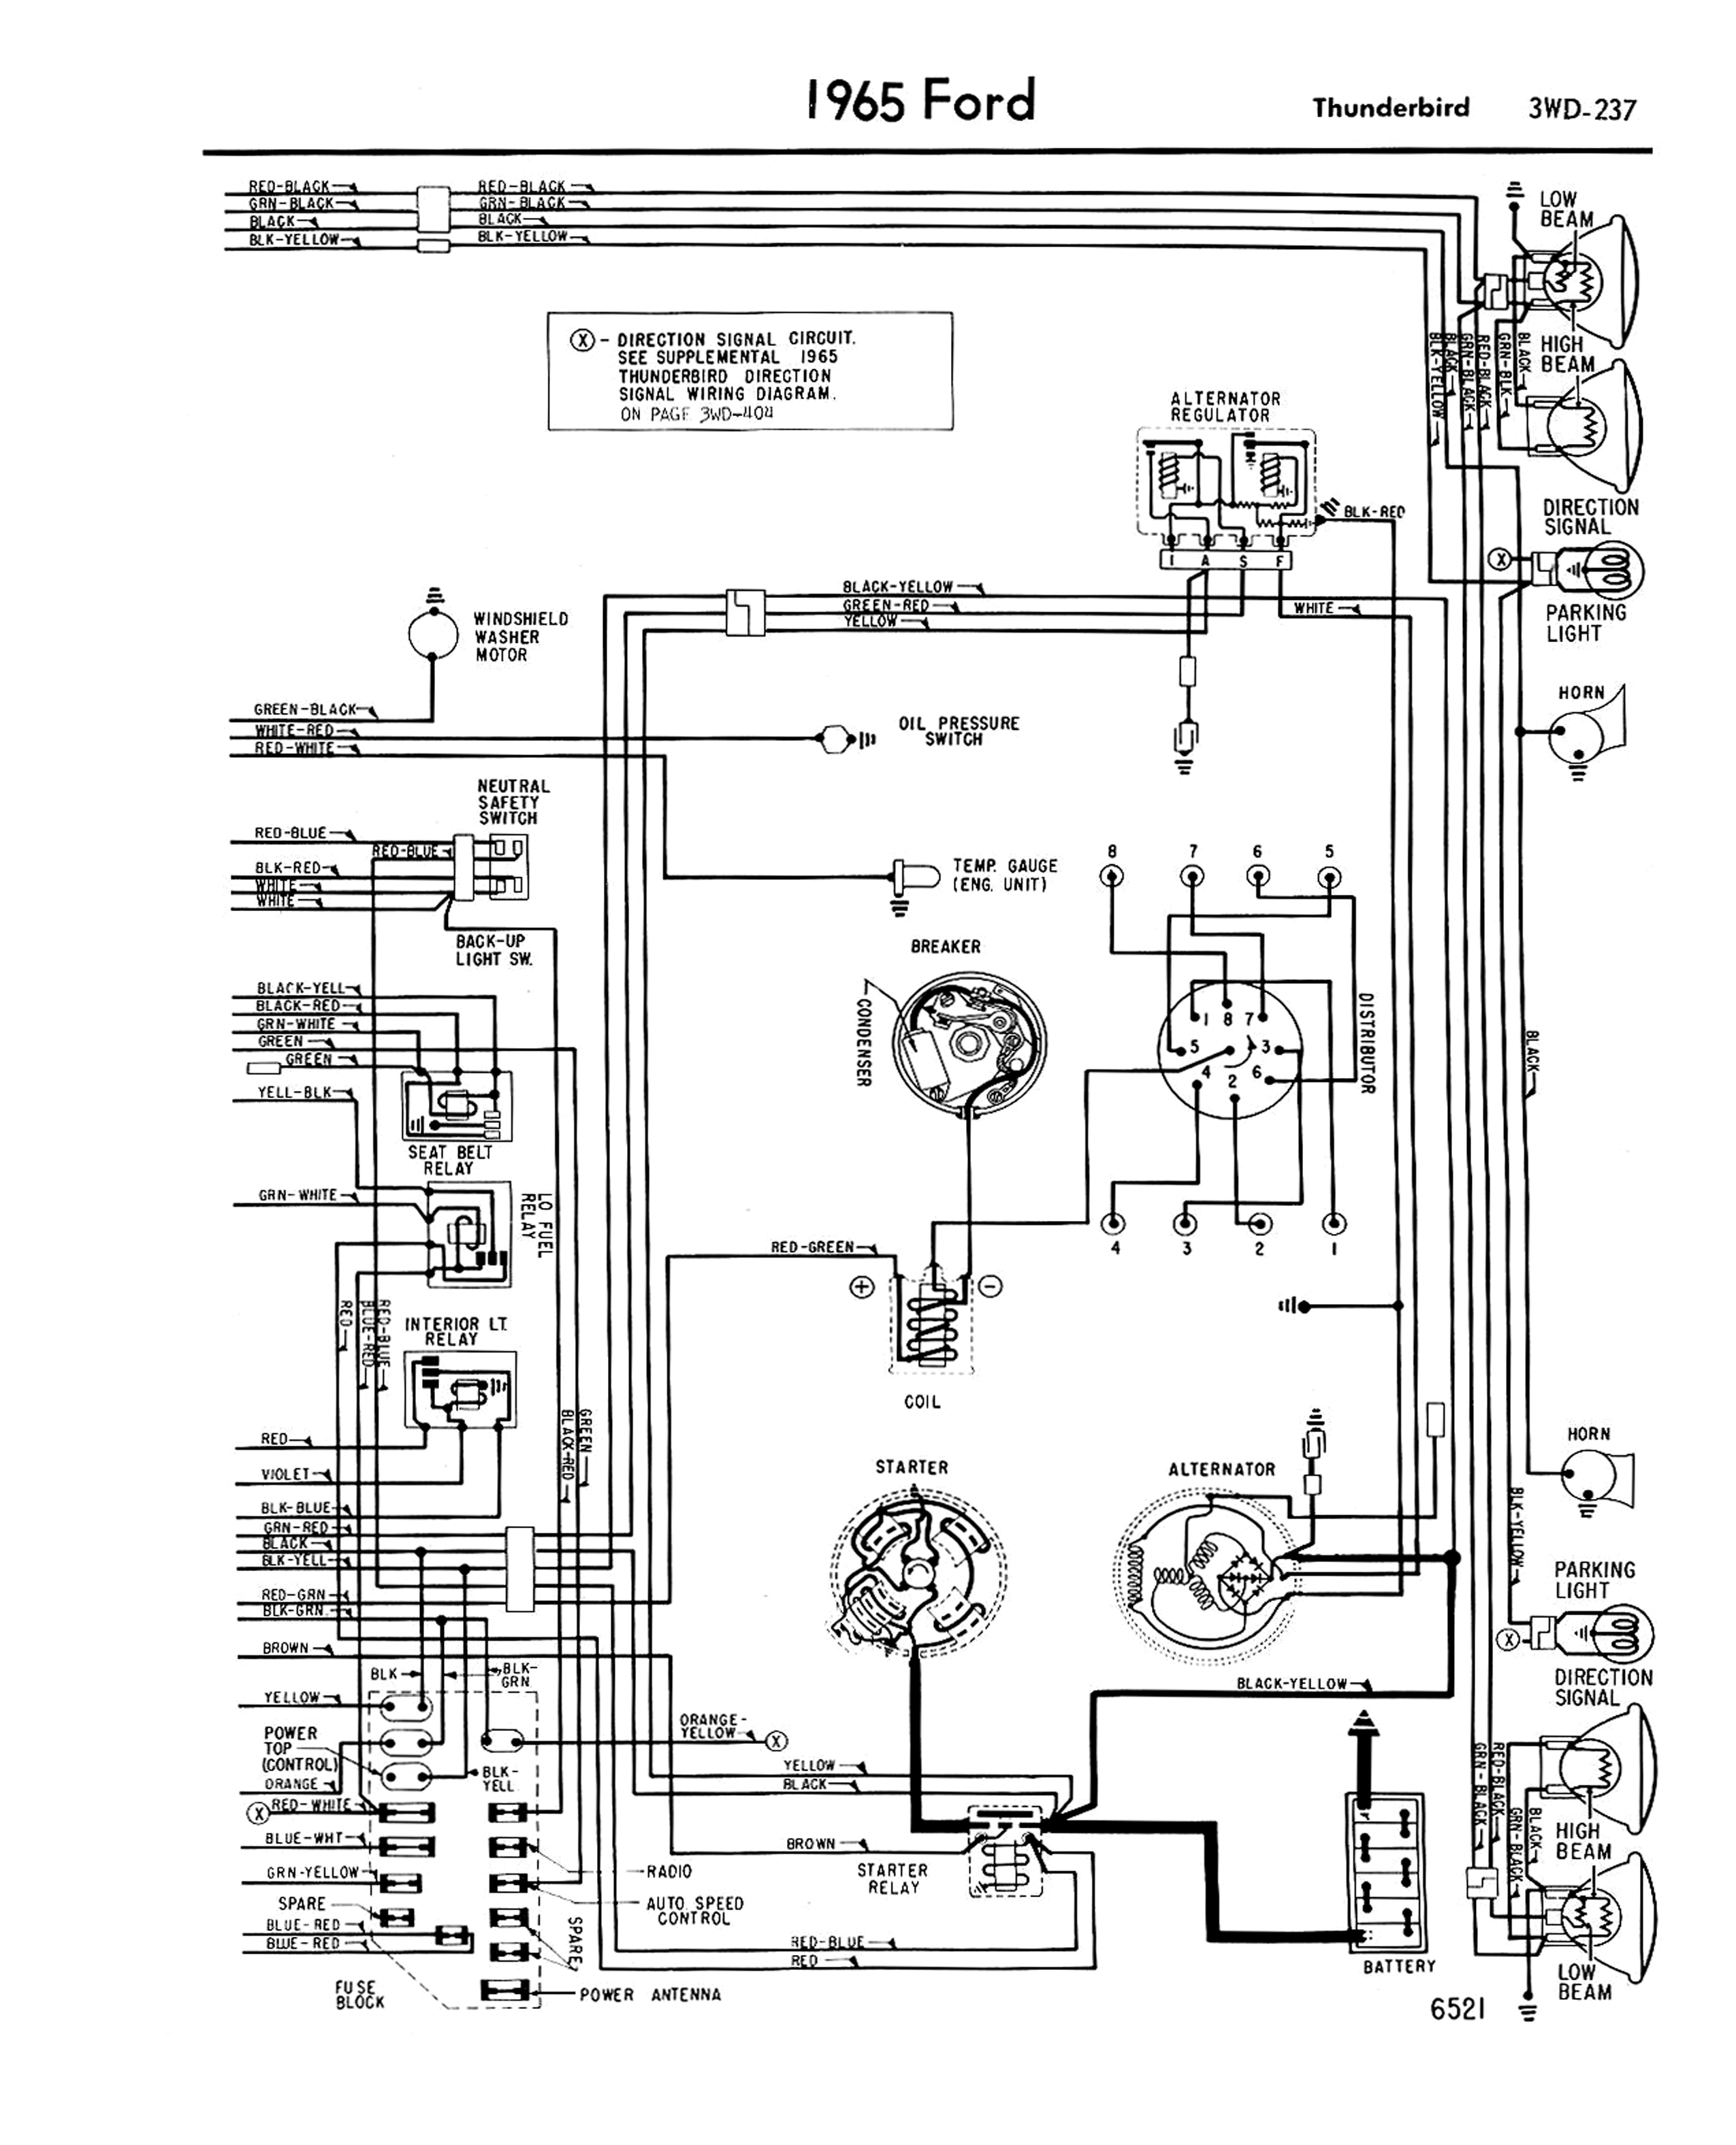 65TbirdWiringDiagramRight 1958 68 ford electrical schematics 1965 thunderbird alternator wiring diagram at crackthecode.co